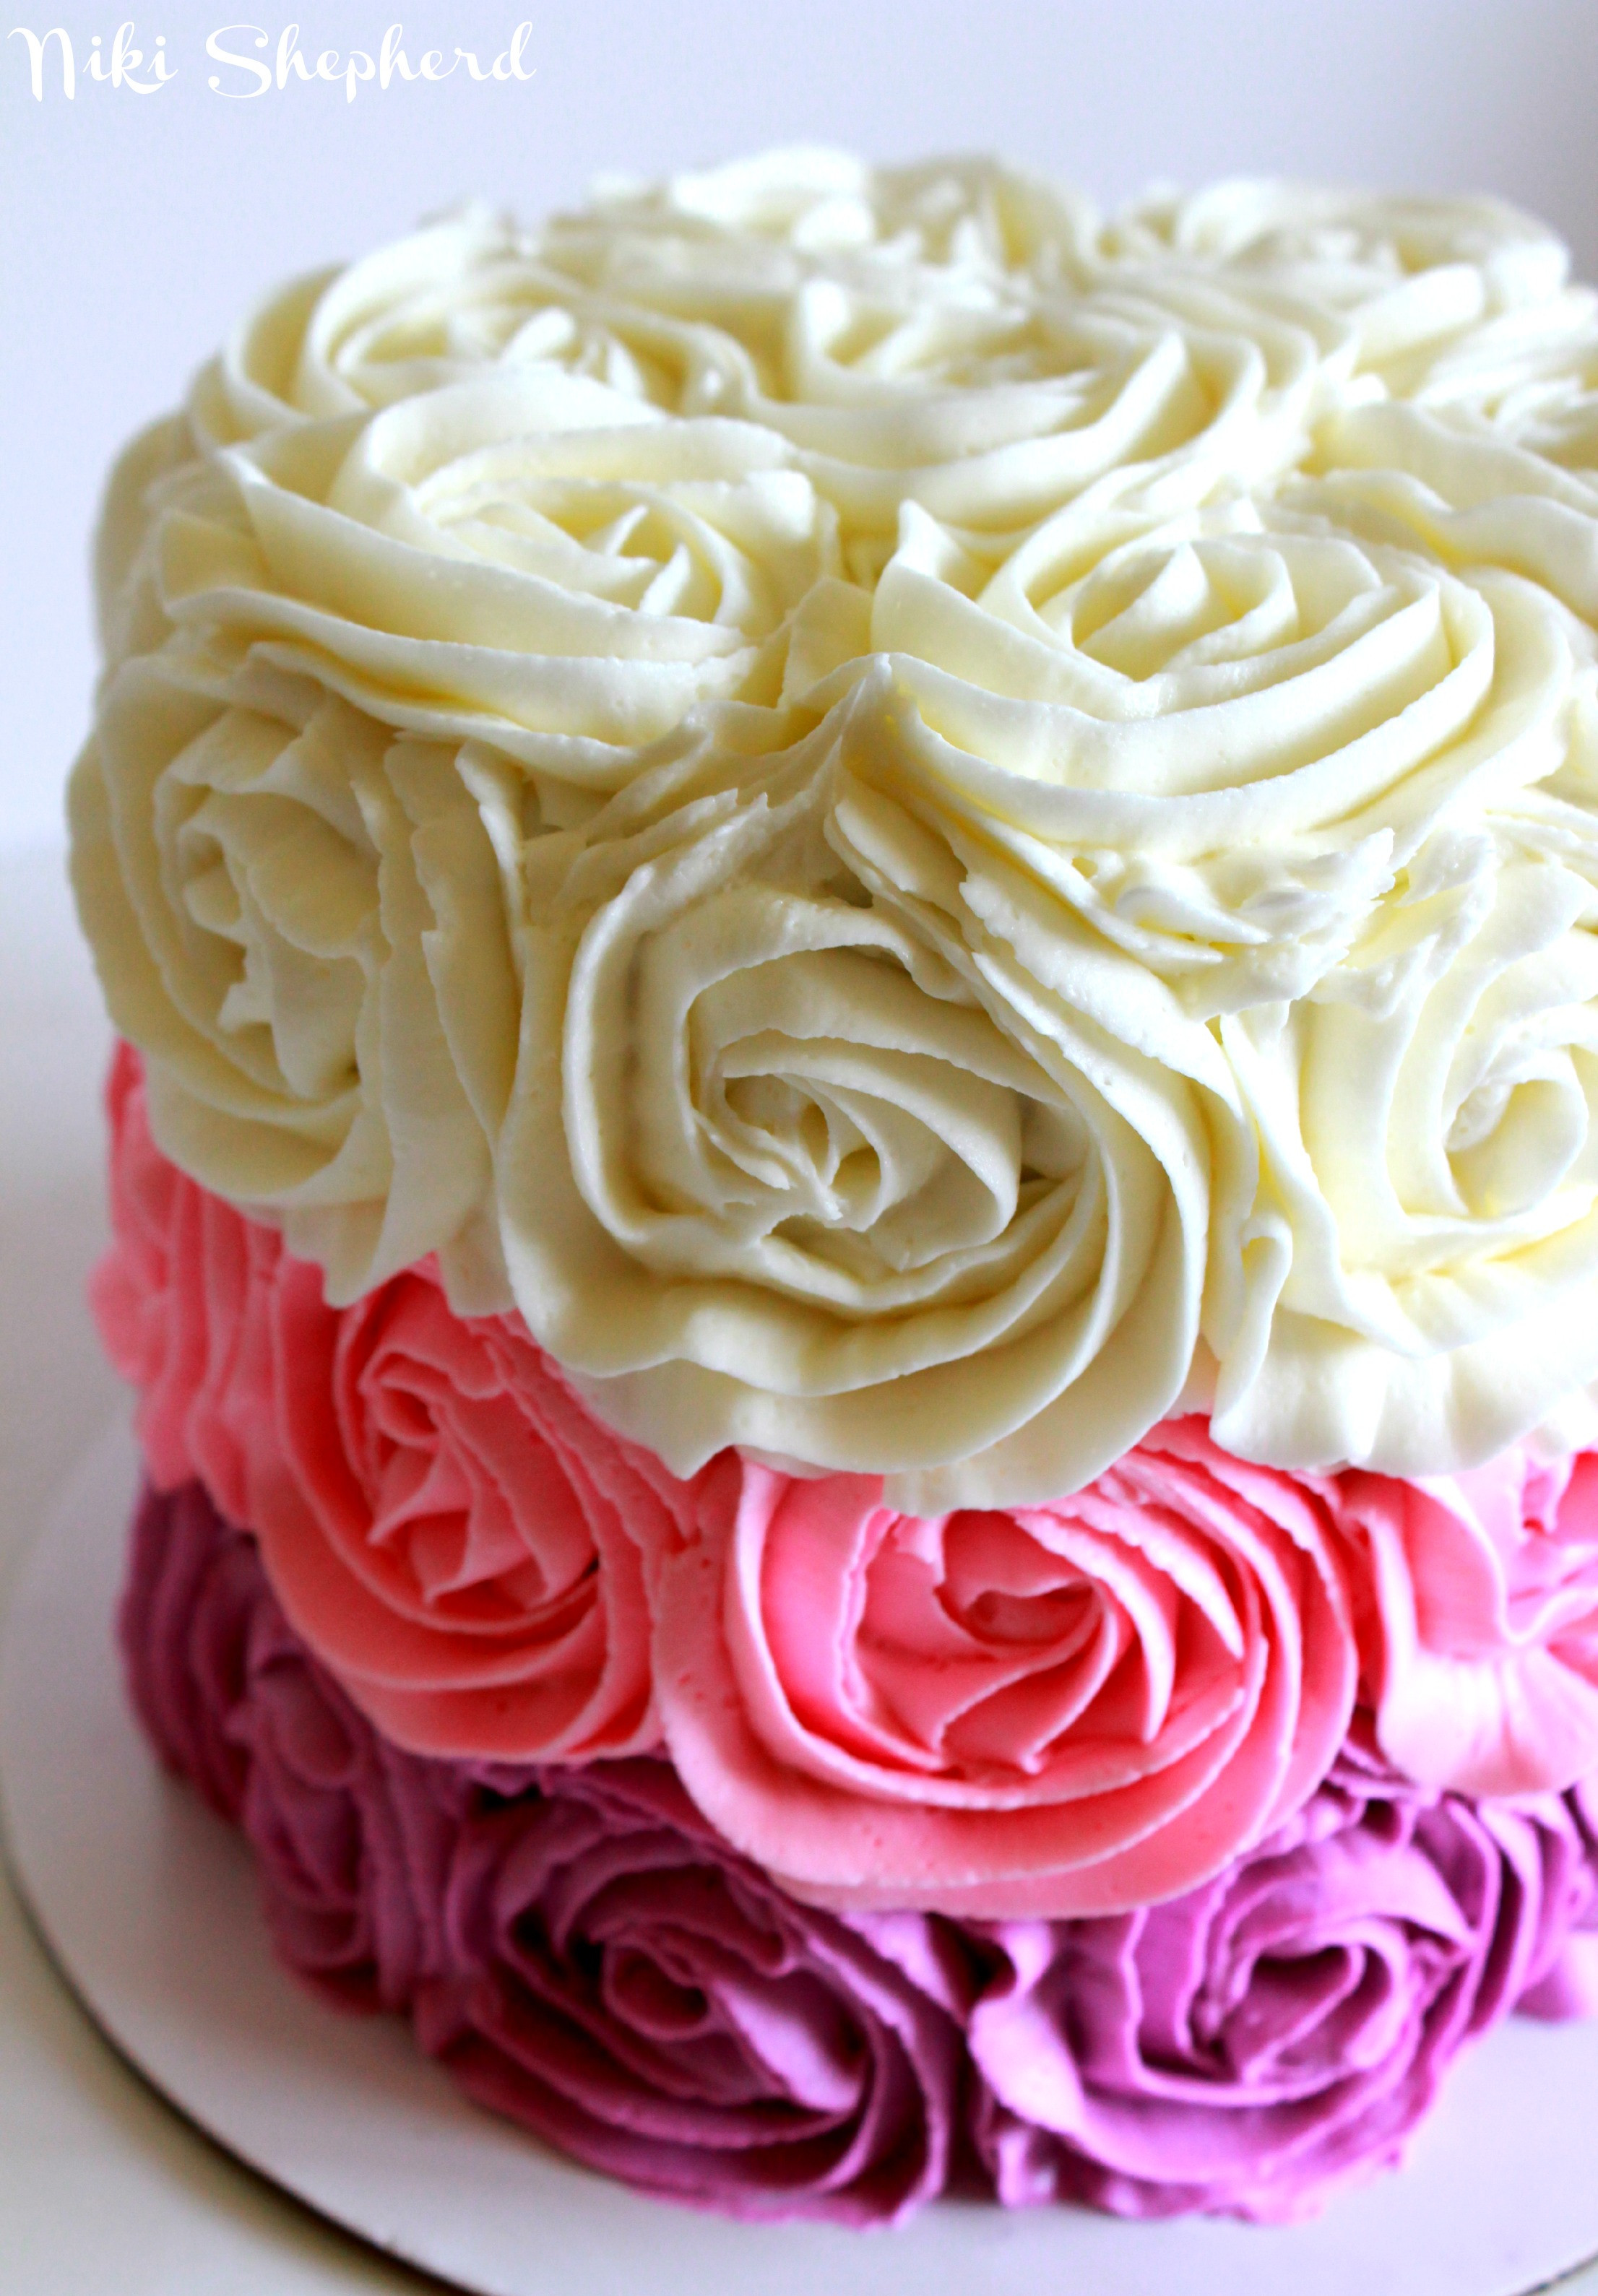 Best ideas about Rose Birthday Cake . Save or Pin My take on i am baker's Rose Cake Now.